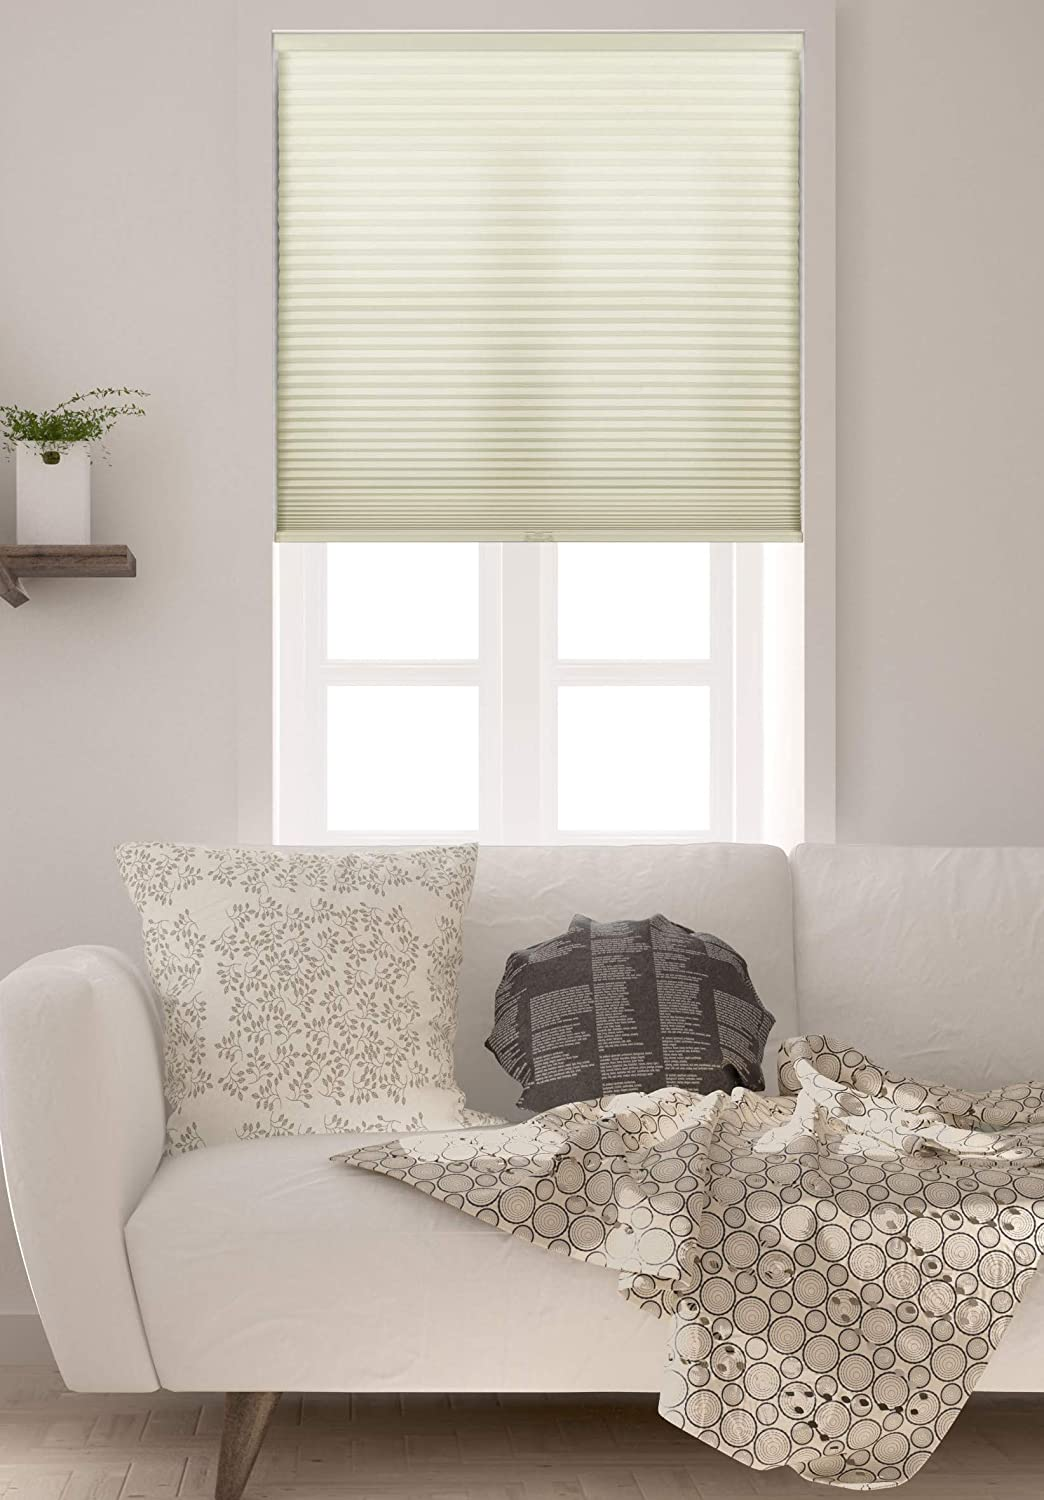 Arlo Blinds Single Sales for sale Cell Light Max 57% OFF Cellular Filtering Shades Cordless